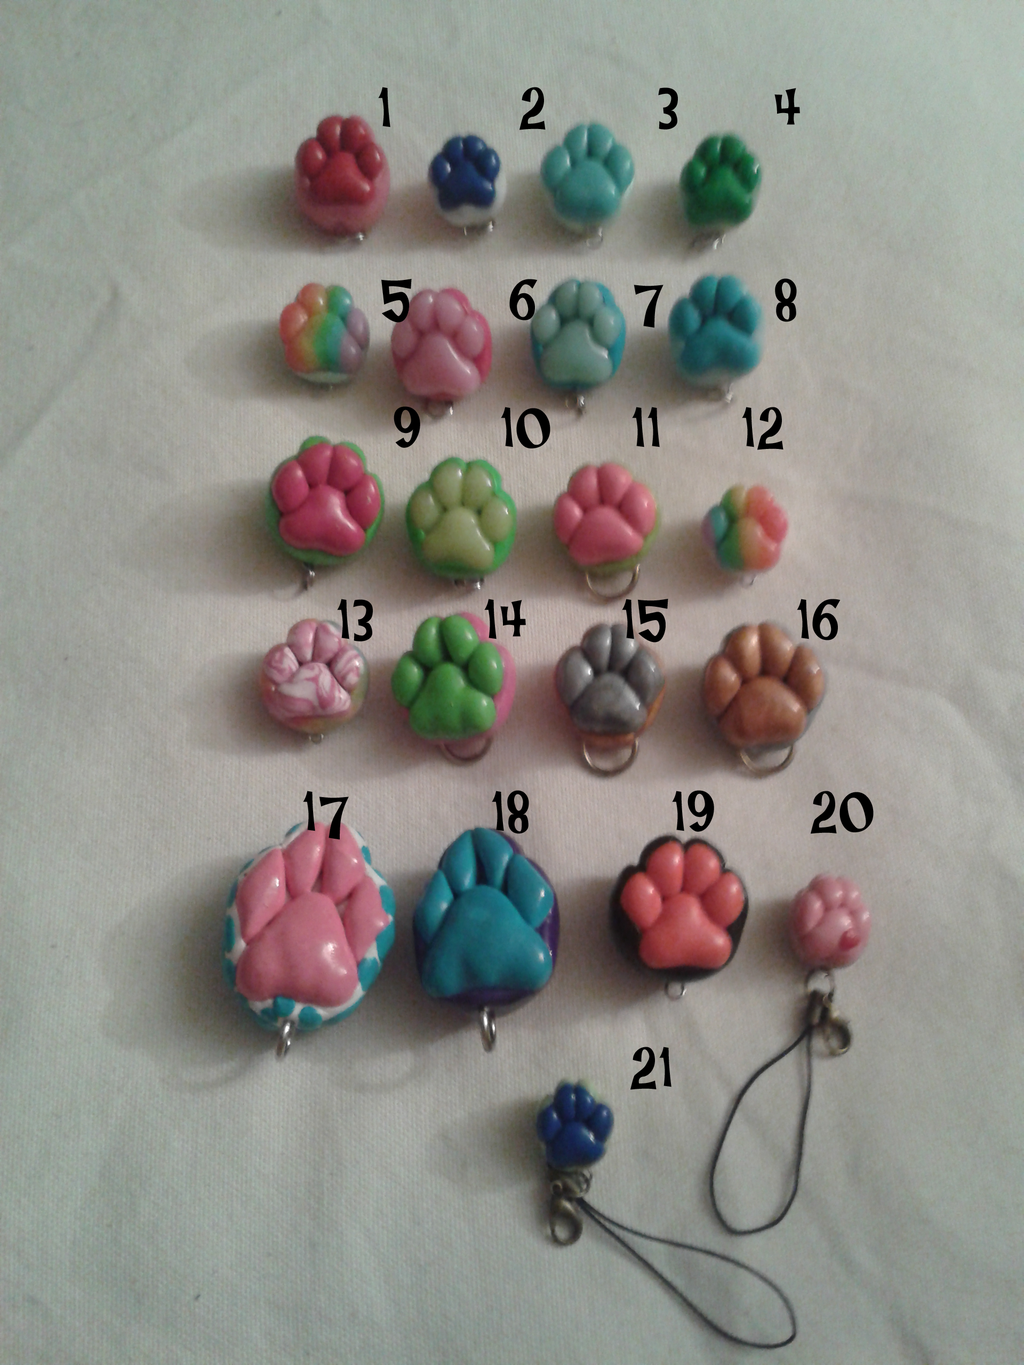 Most recent image: paw charms